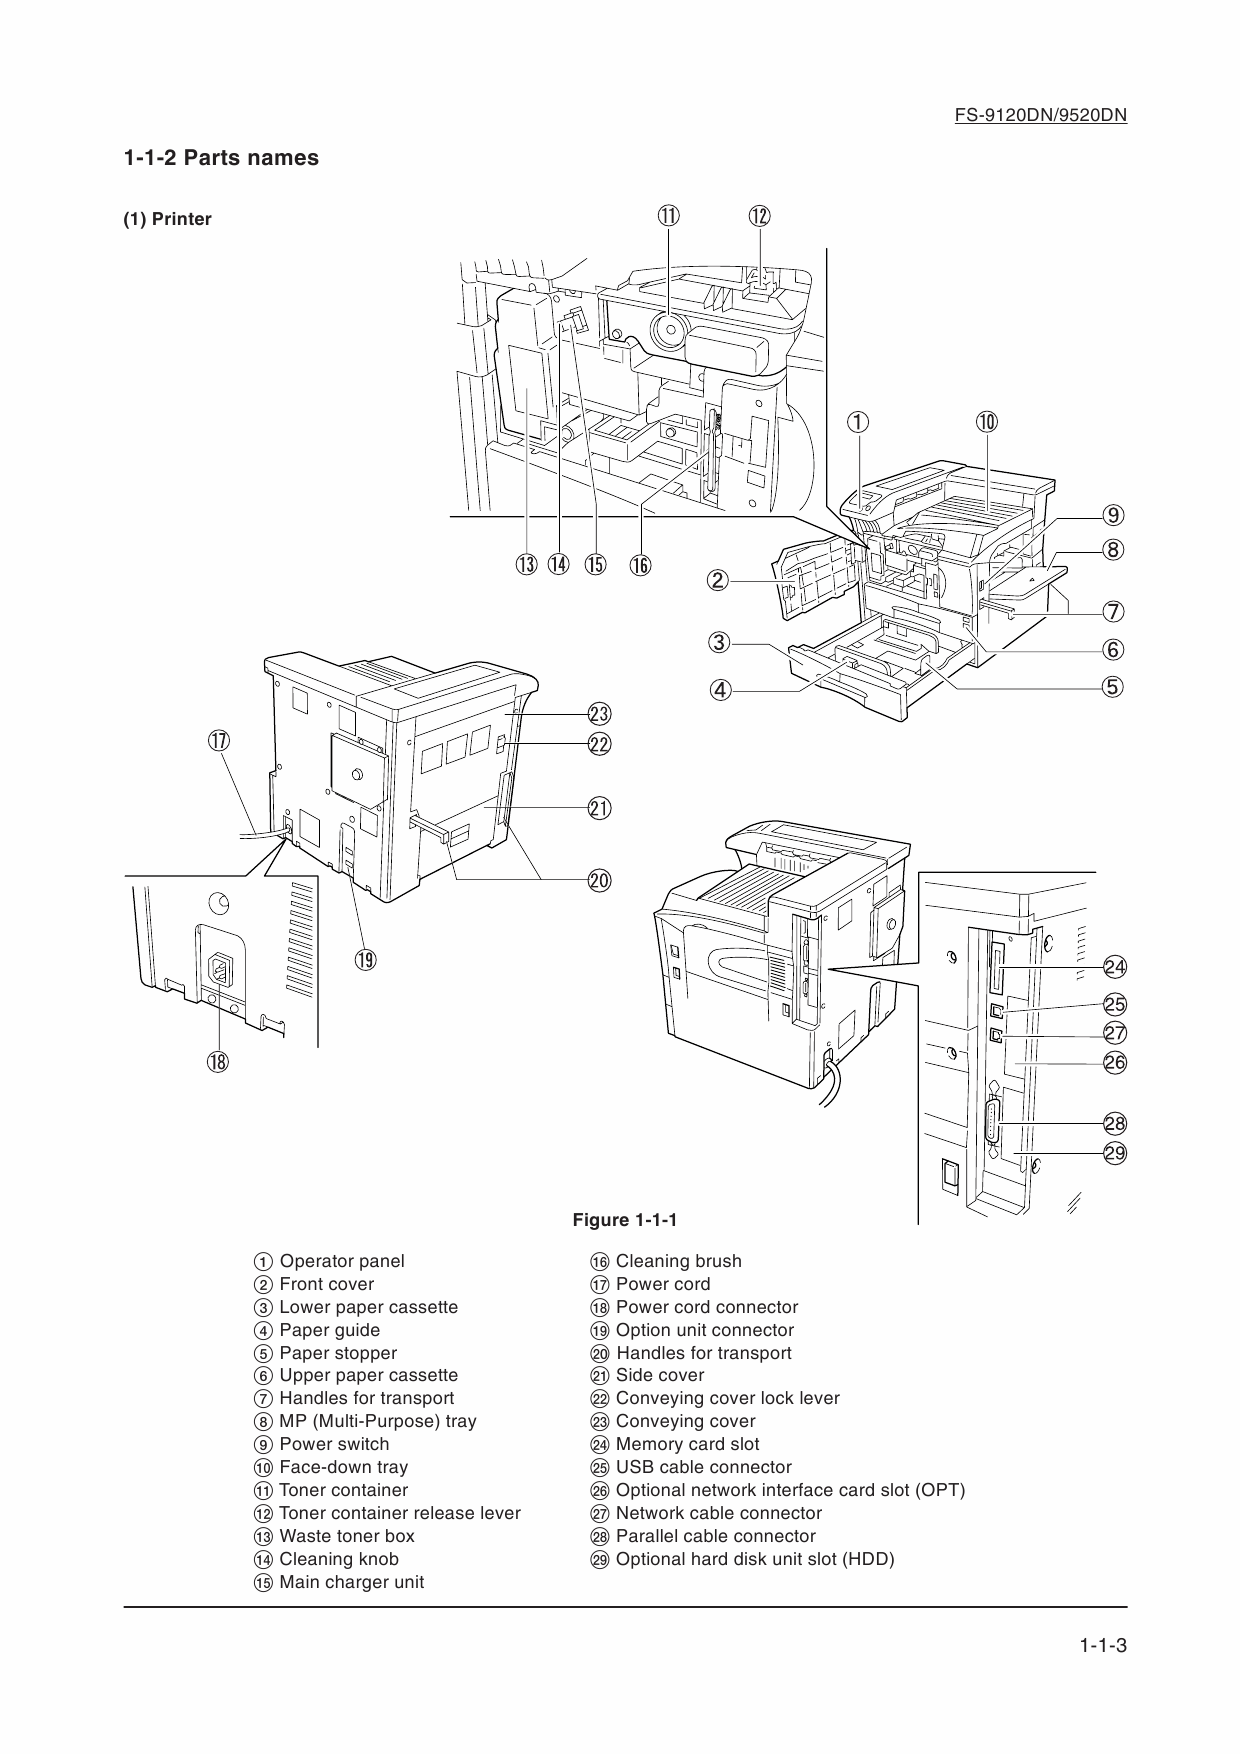 KYOCERA LaserPrinter FS-9120DN FS-9520DN Parts and Service